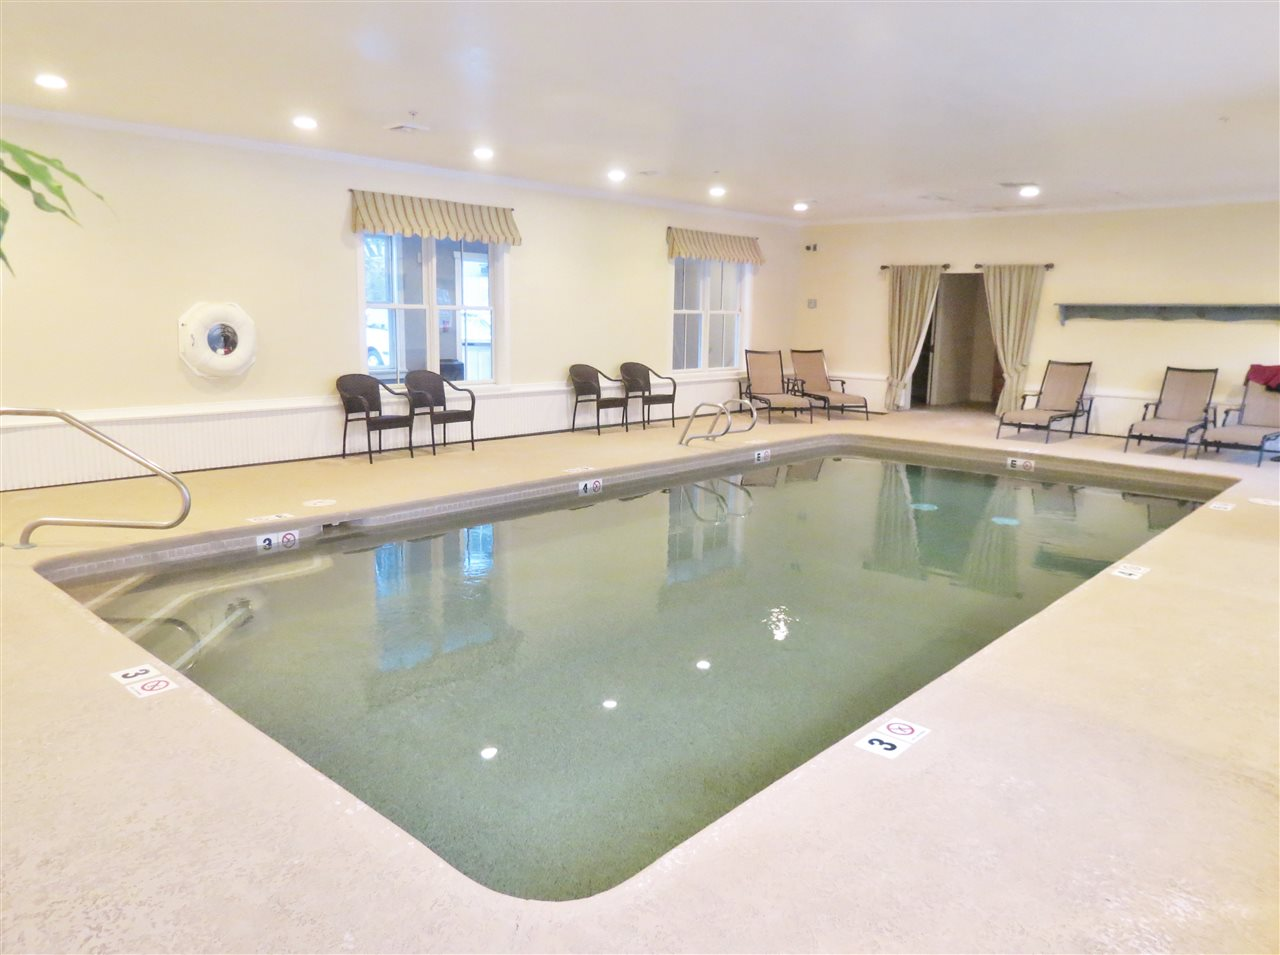 Indoor pool 11332490